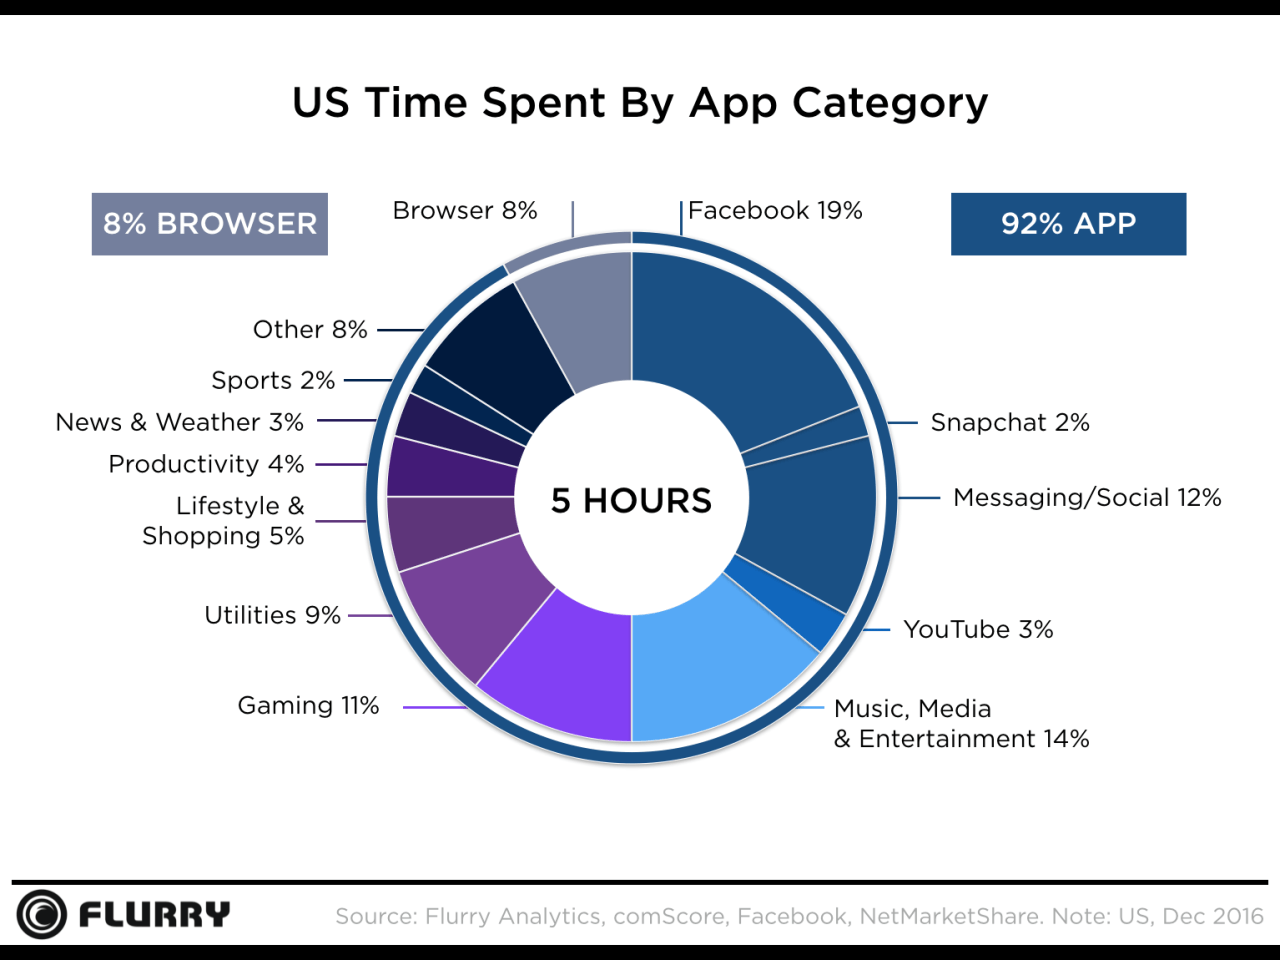 flurry-mobile-commerce-statistics-time-spent-on-apps